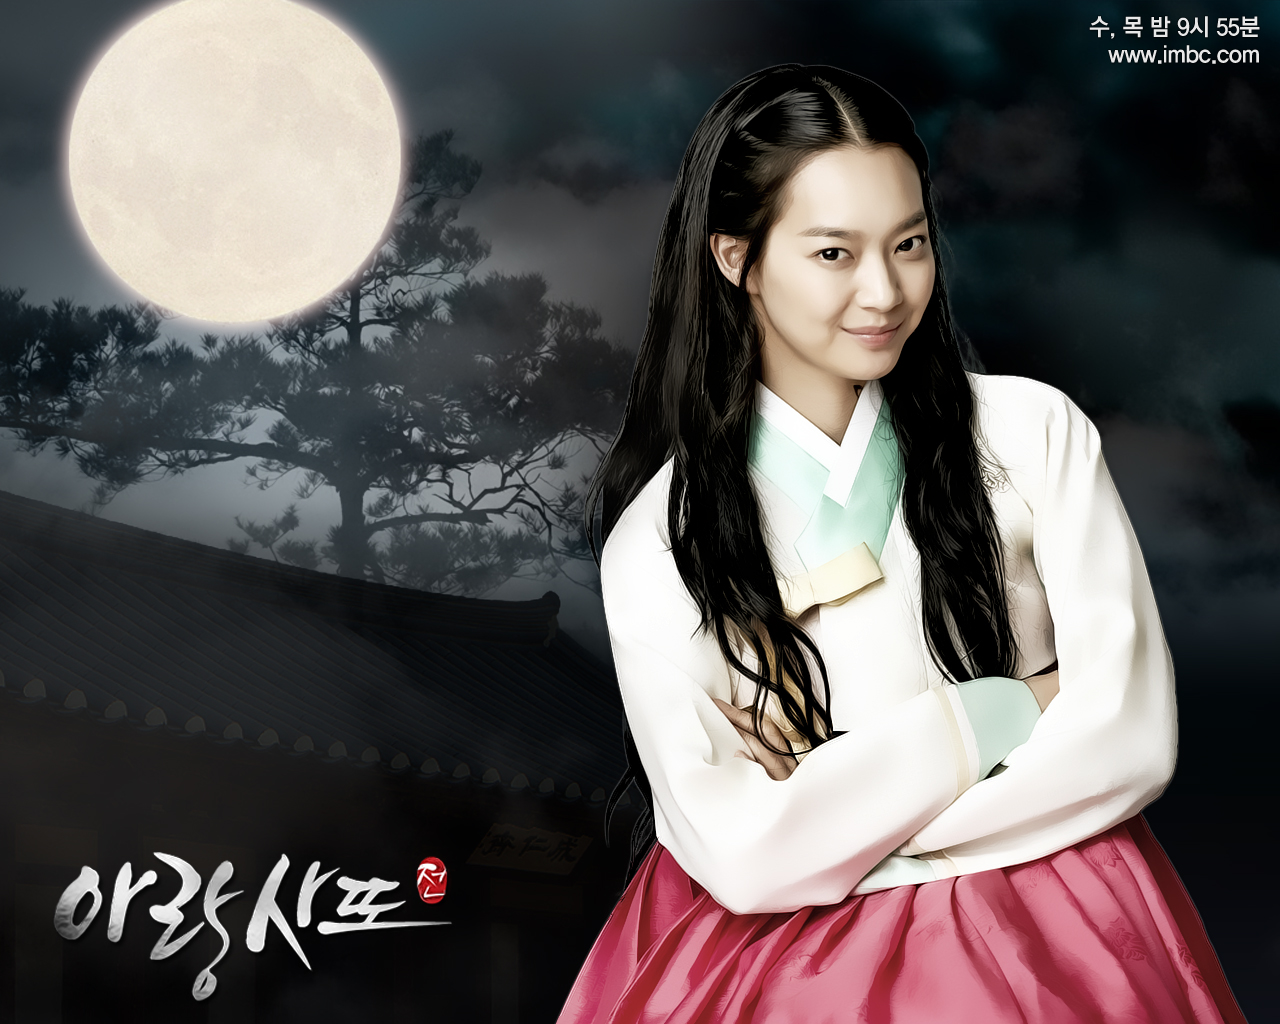 Res 1159x1099 Px Shin Min Ah Gumiho Wallpaper 22840 These Images